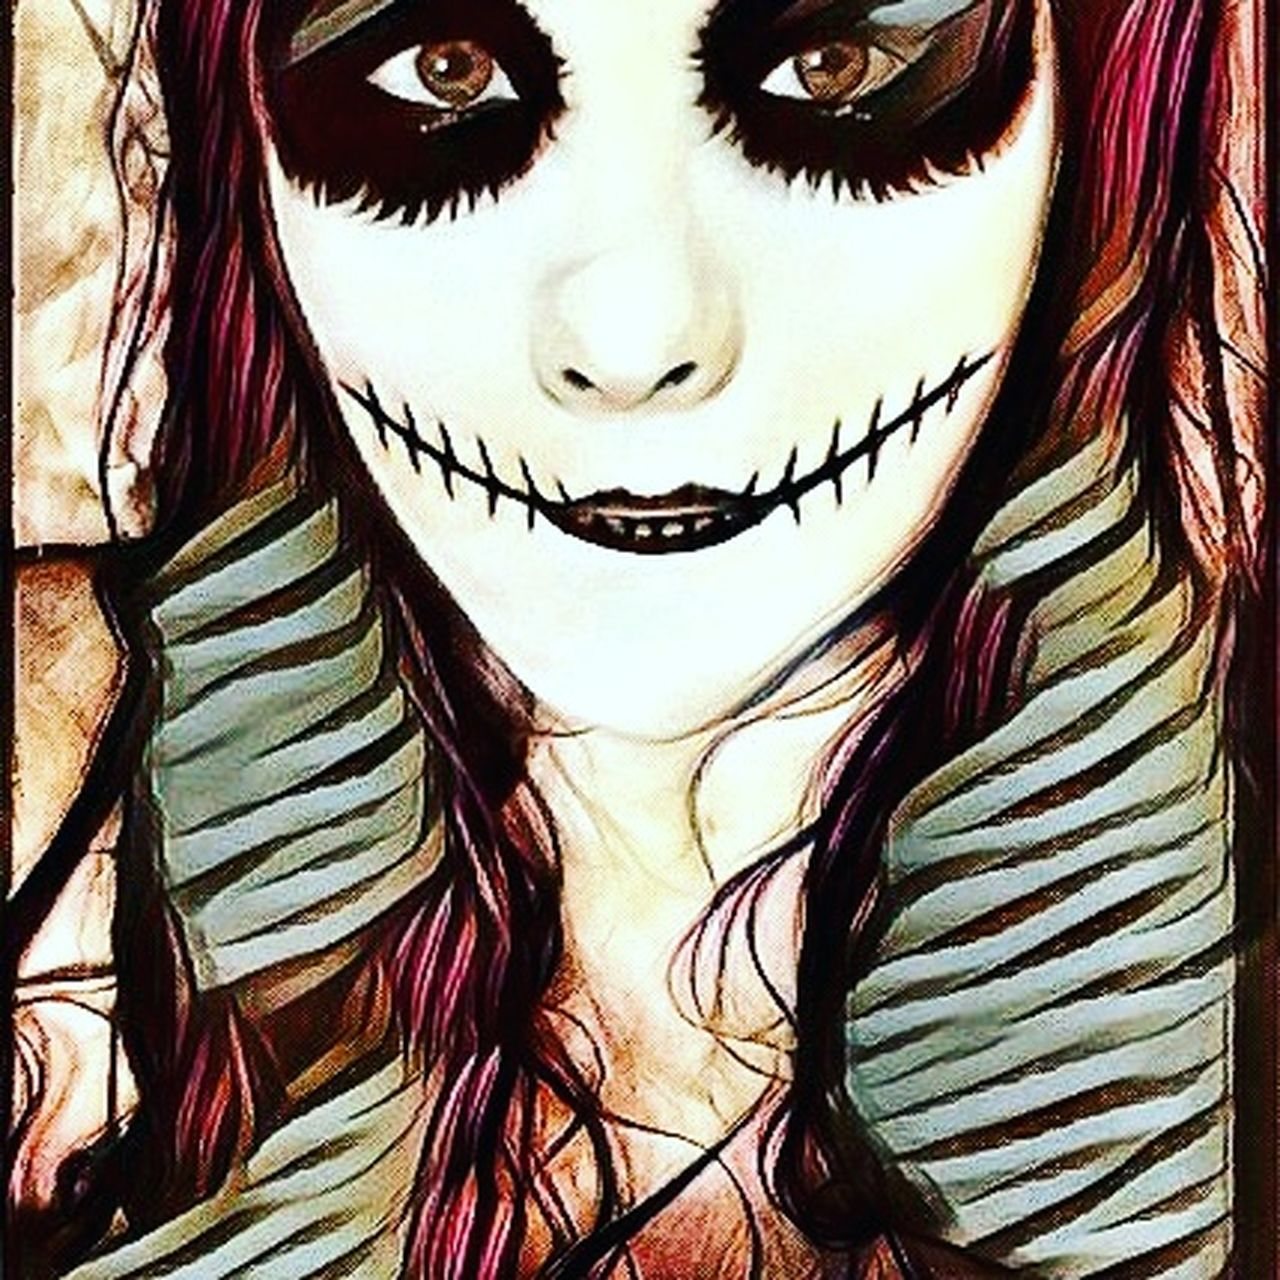 Reedited Halloween Zombiedoll Photographer Photo Effects Cool Effect Check This Out Halloween EyeEm Me Digitalart